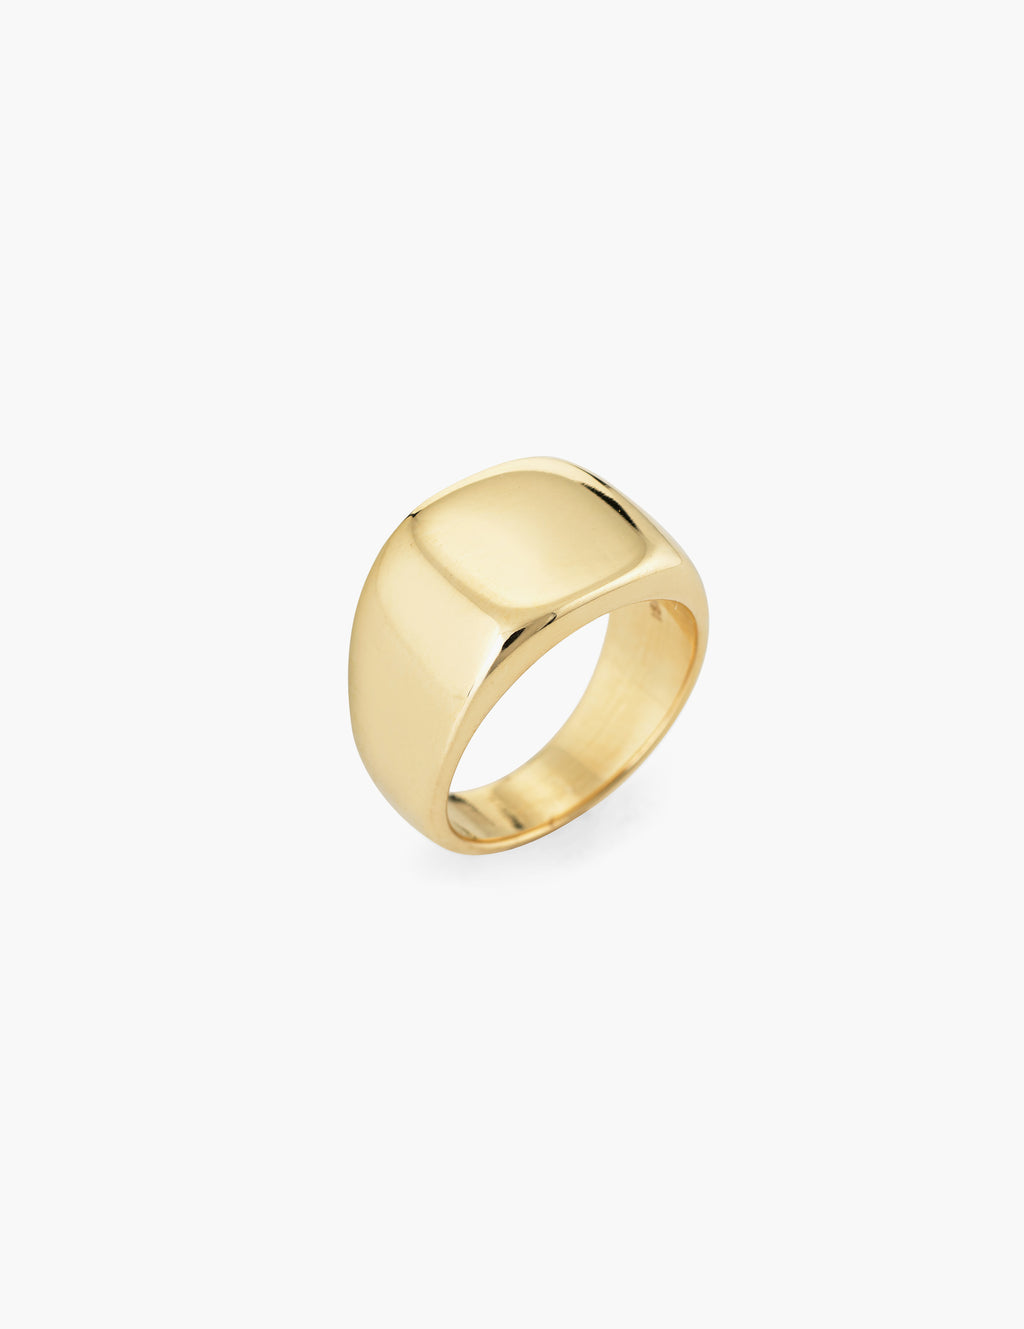 Jacqueline signet ring